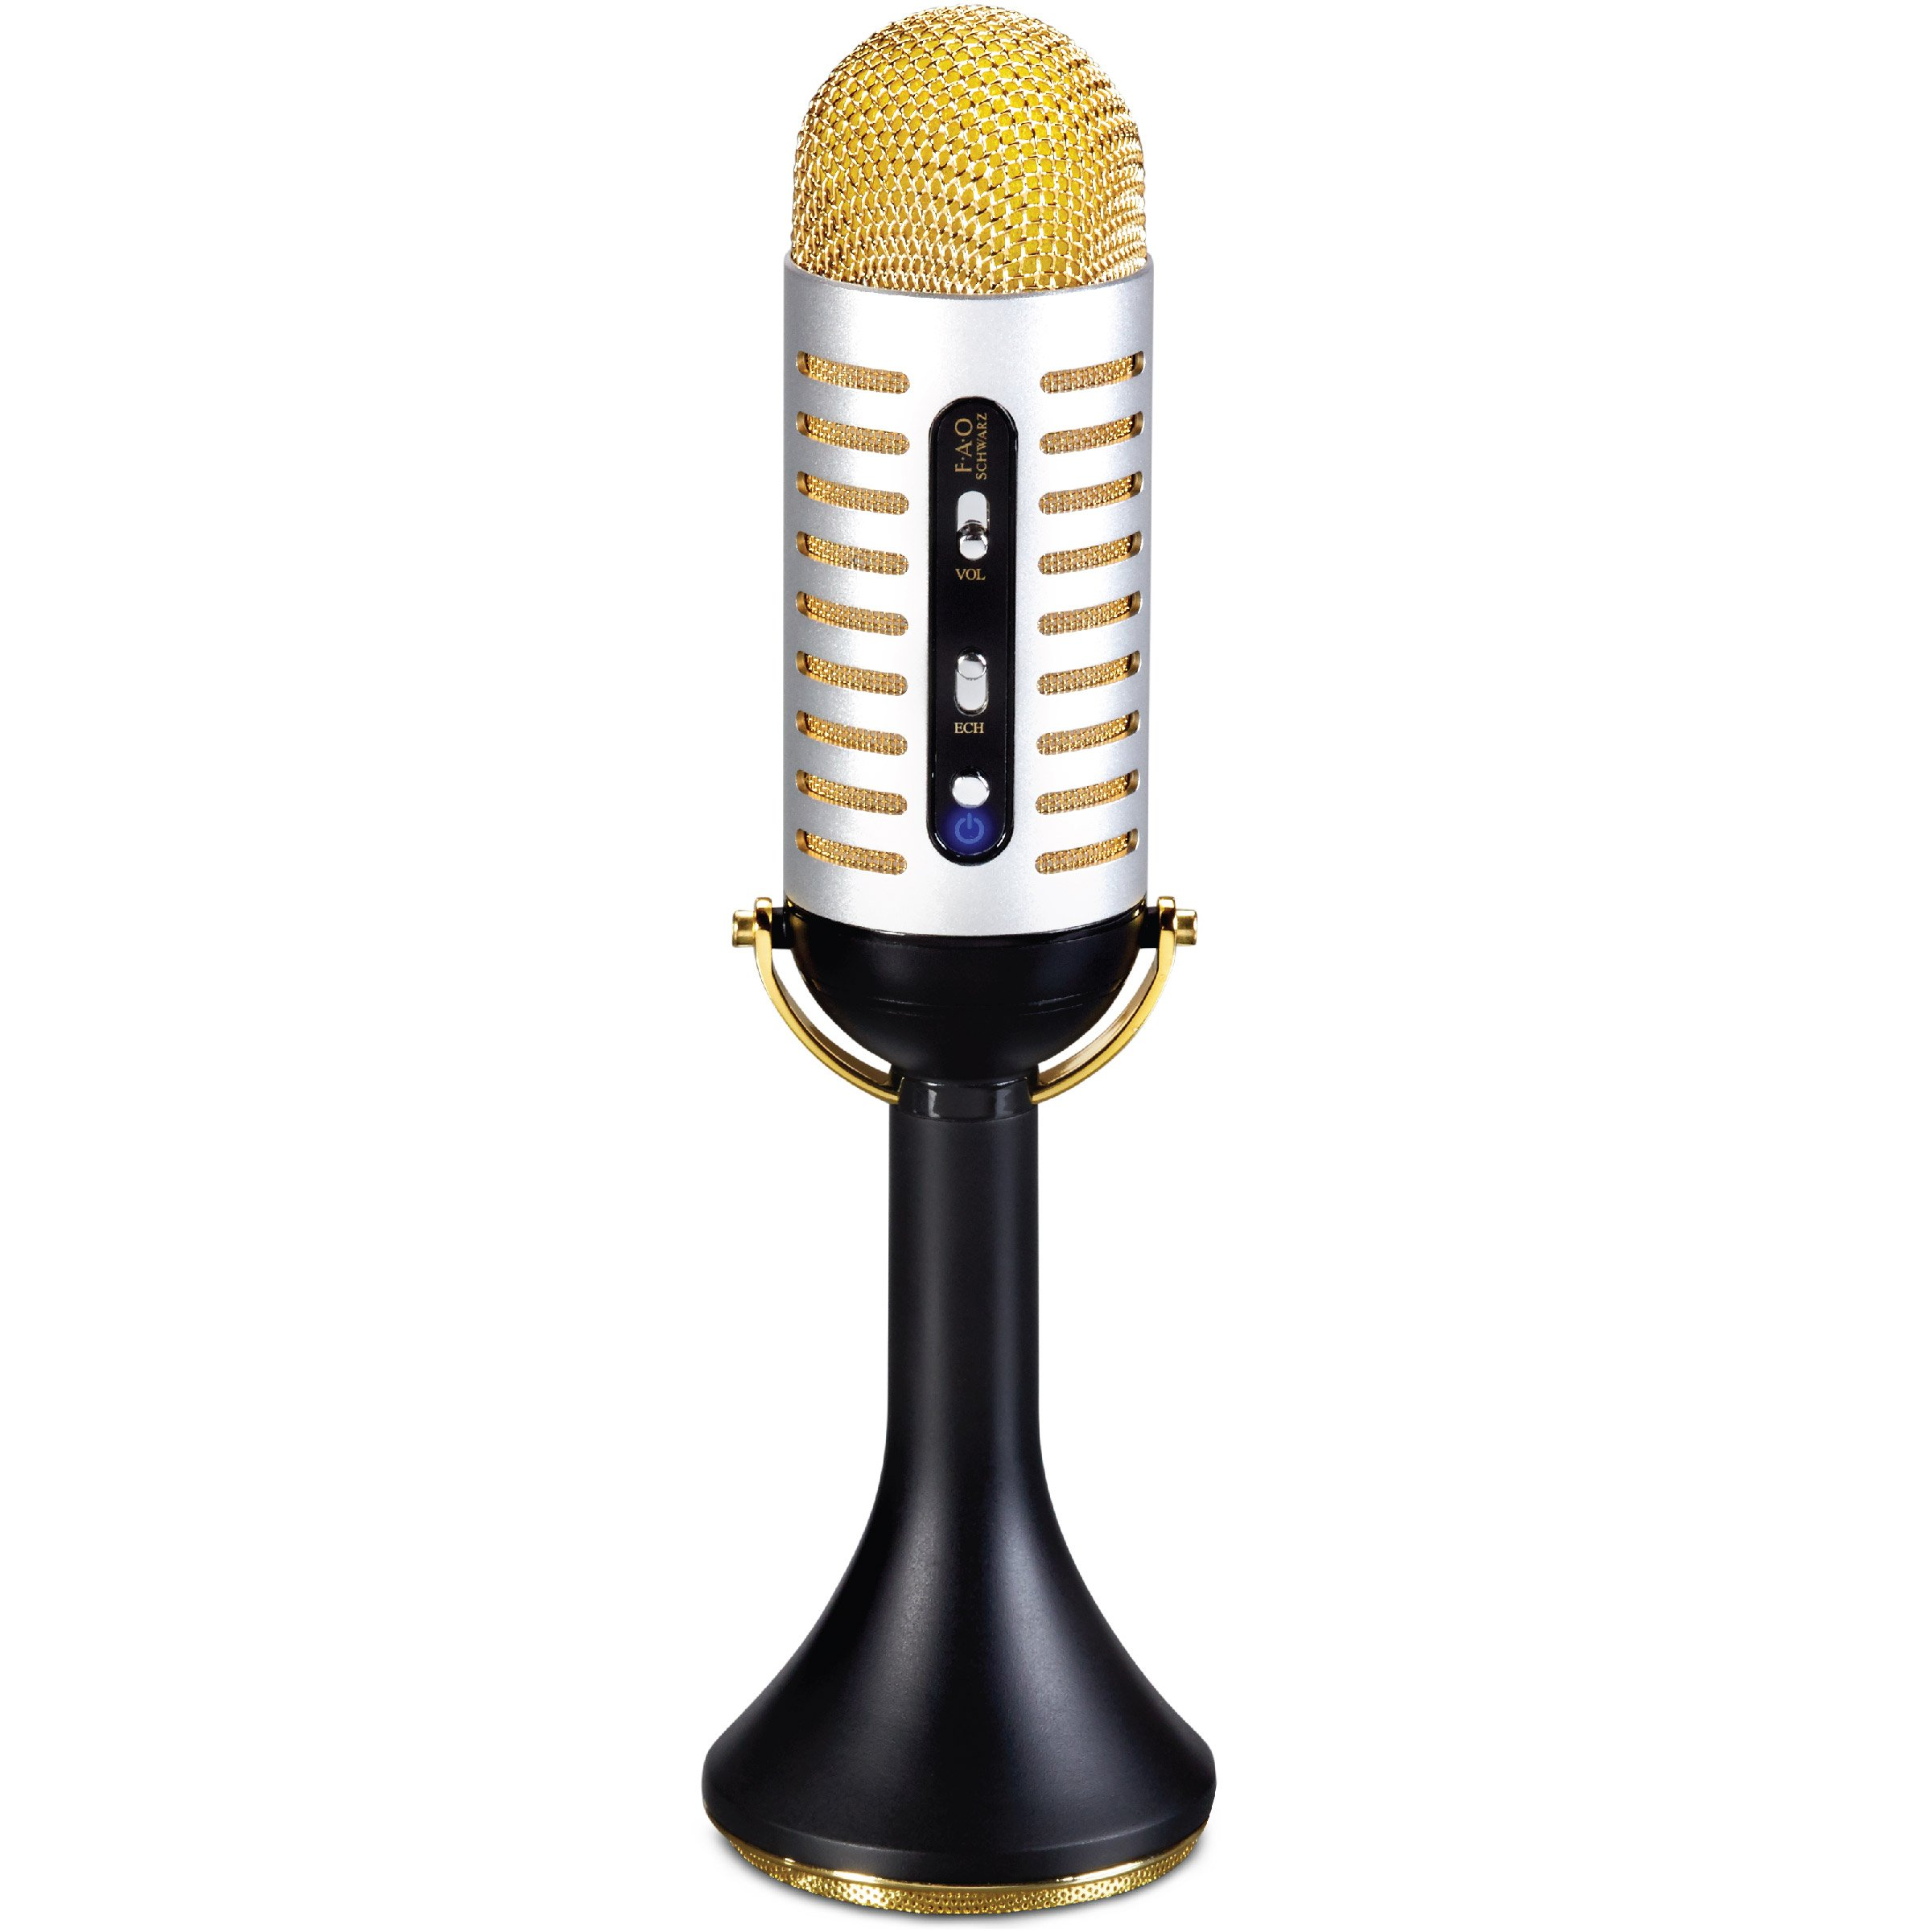 FAO Schwarz Karaoke Music Microphone w/Built-in Portable Handheld Speaker for Parties, Bluetooth & Smartphone Compatible, Vintage 20s Ribbon Style, USB, AUX Cable & Headphone Jacks, Rechargeable by FAO Schwarz